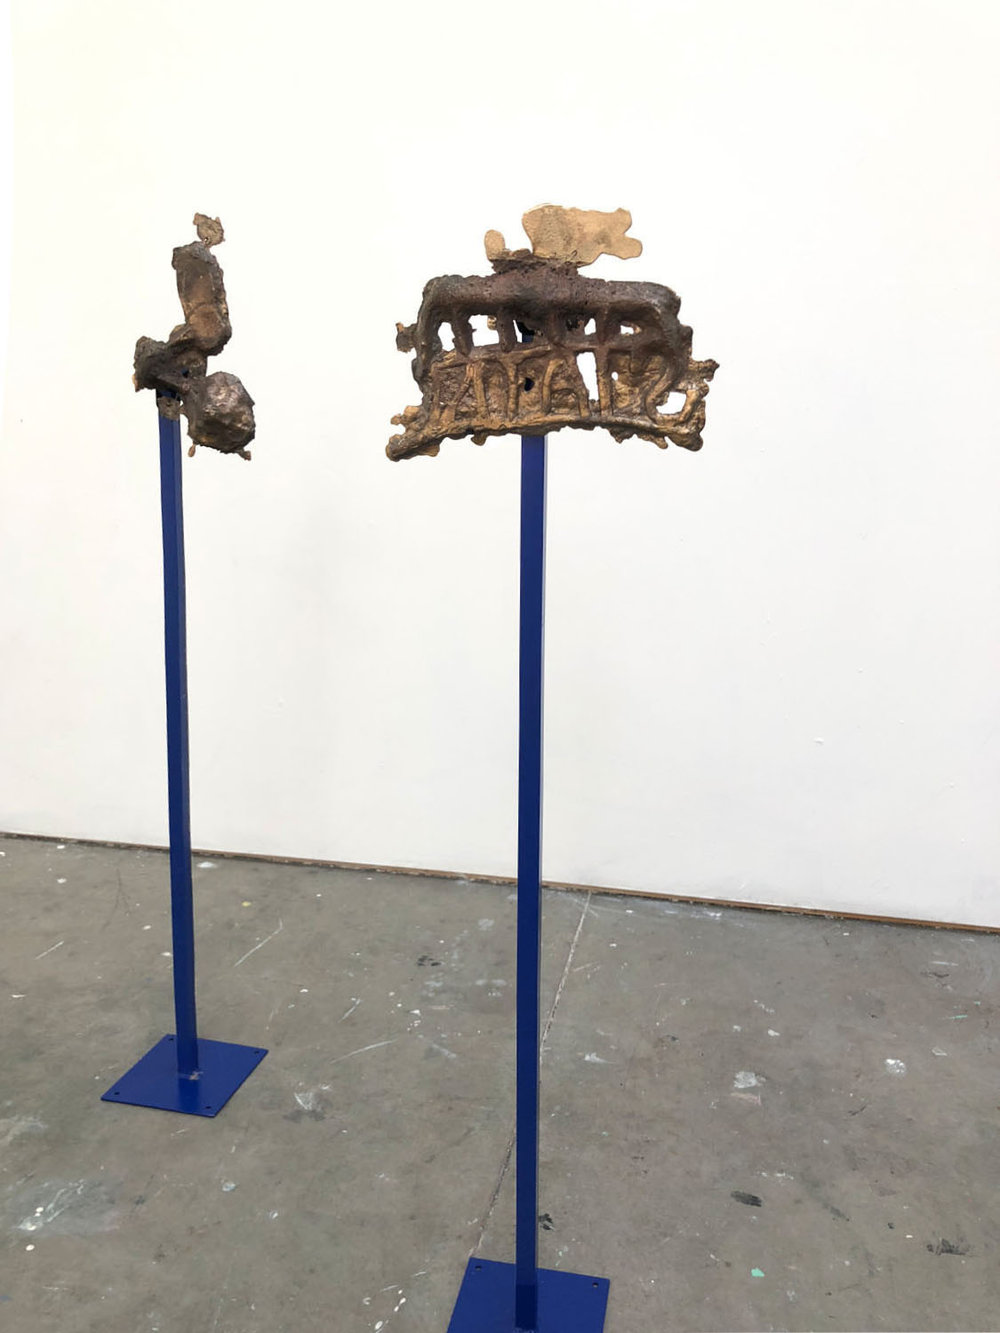 Throat and Ear,  2018, bronze, painted steel, 45 x 10 x 12 inches  Stain Traveling Backwards,  2018, bronze, painted steel, 46 x 13 x 12 inches